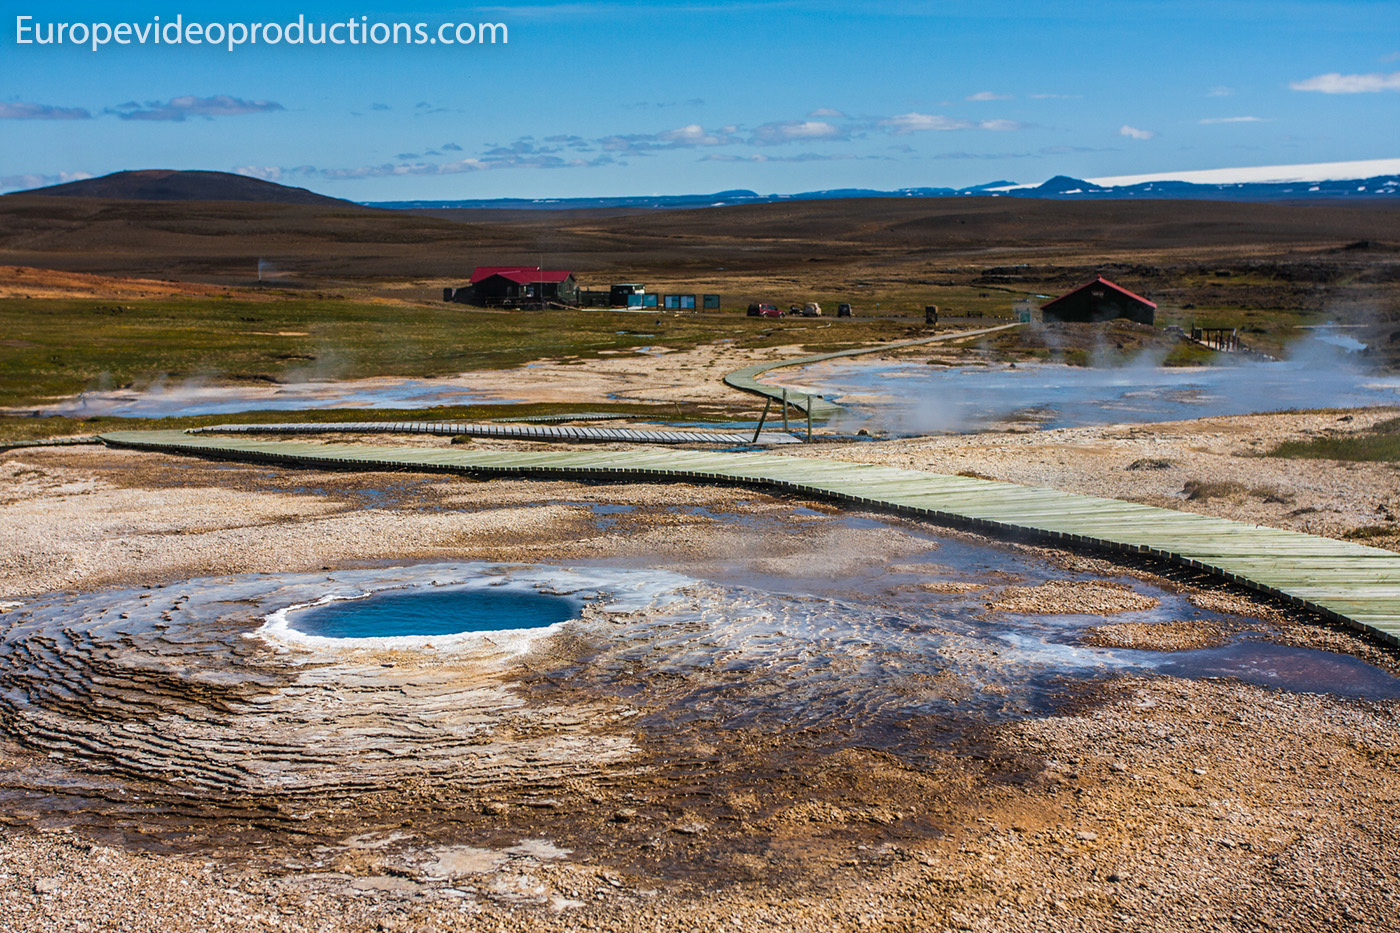 Hveravellir geothermal area and nature reserve in the highlands of Iceland